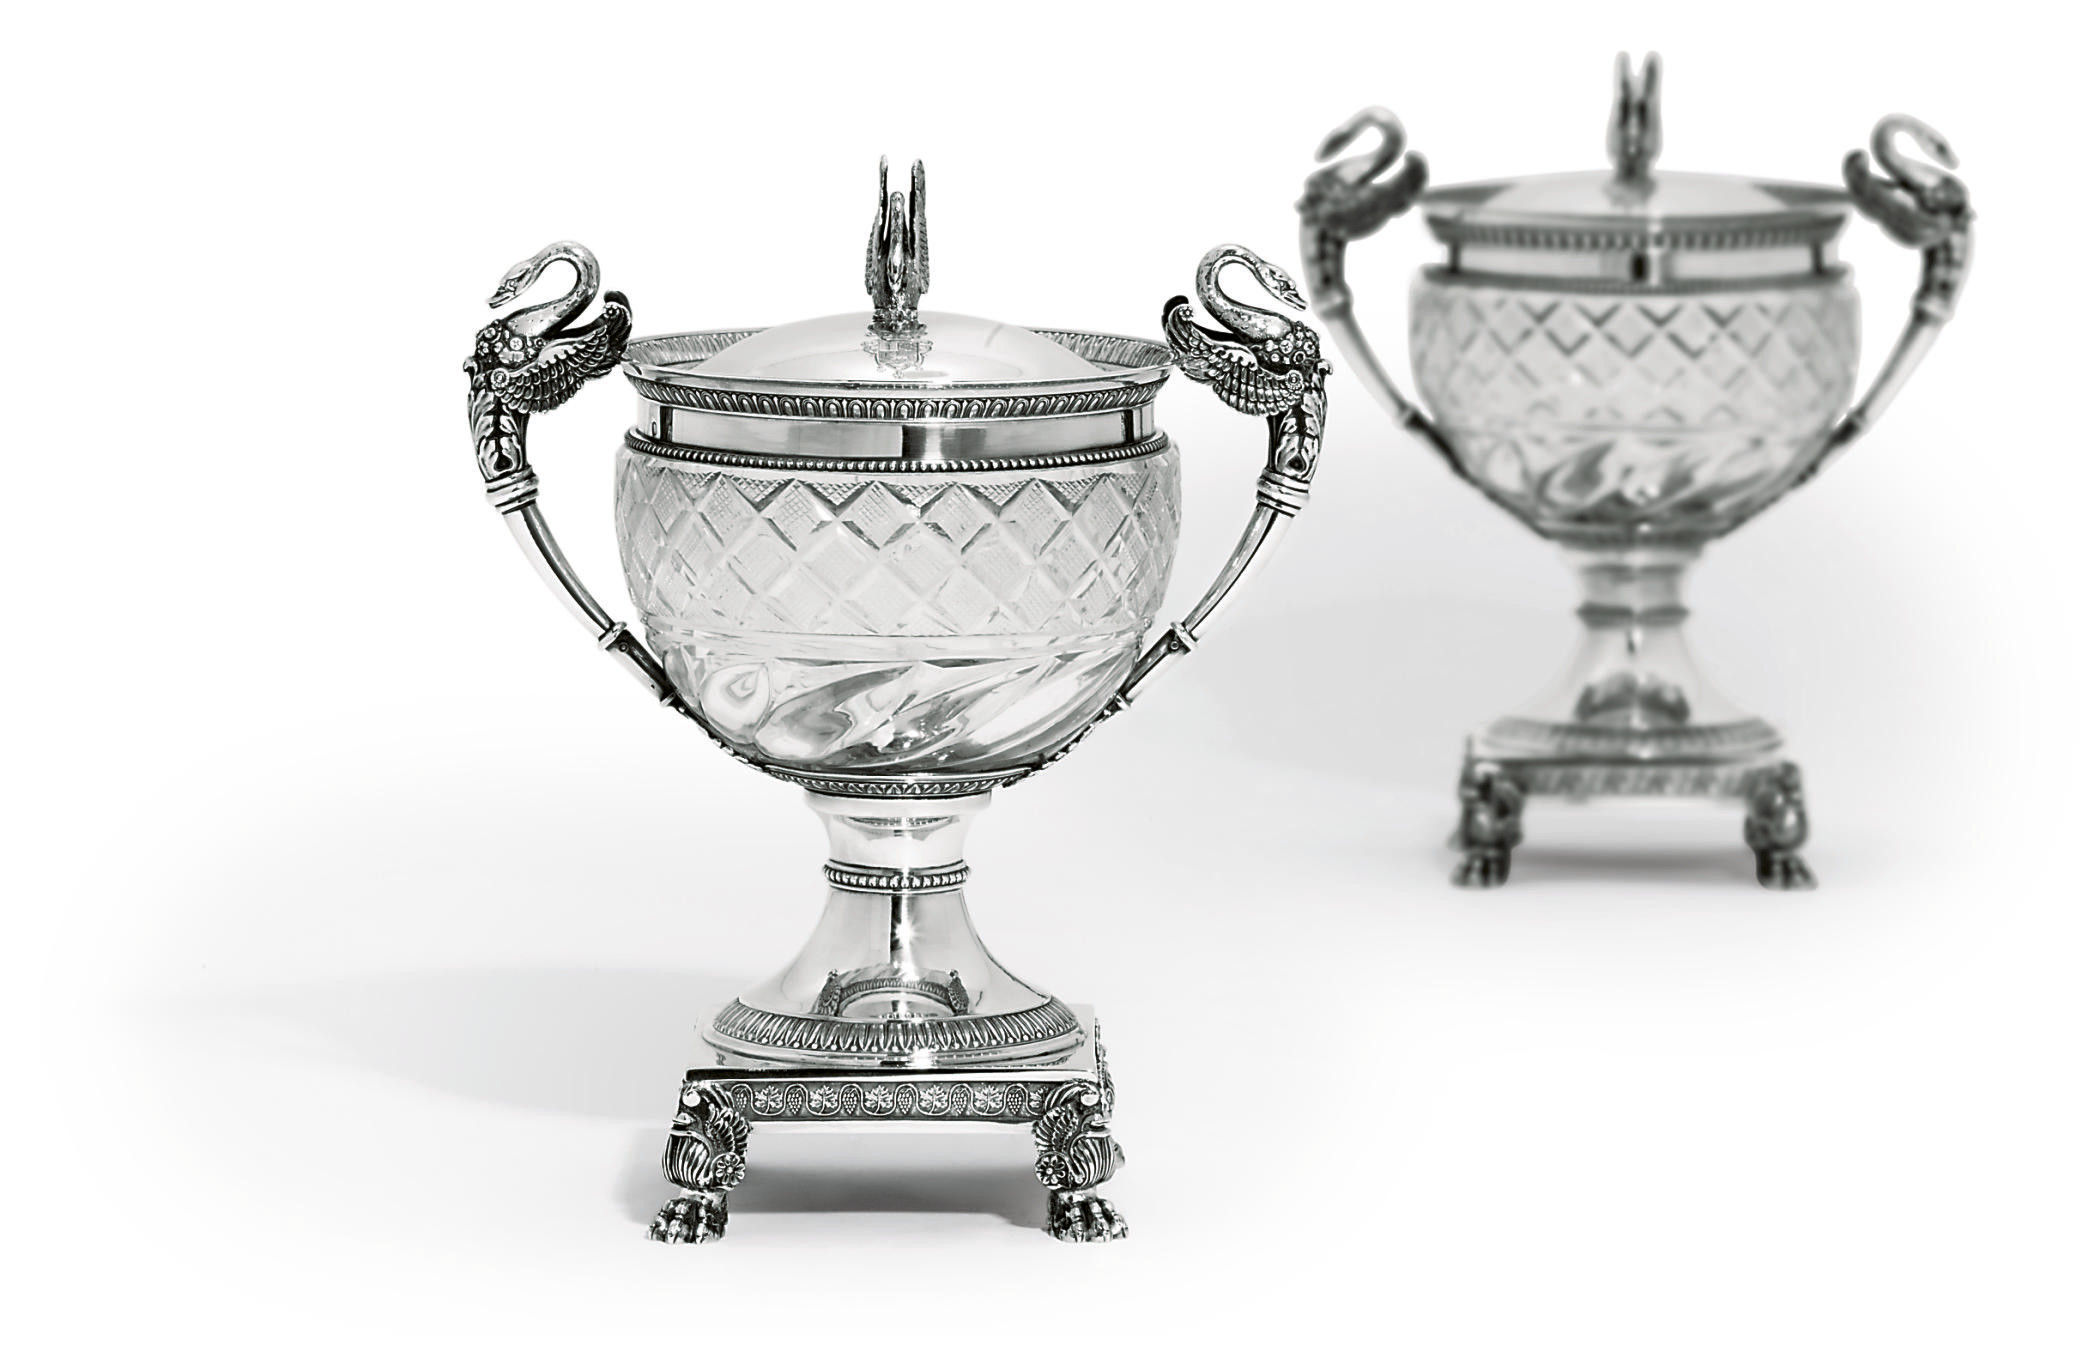 TWO FRENCH SILVER-MOUNTED CUT-